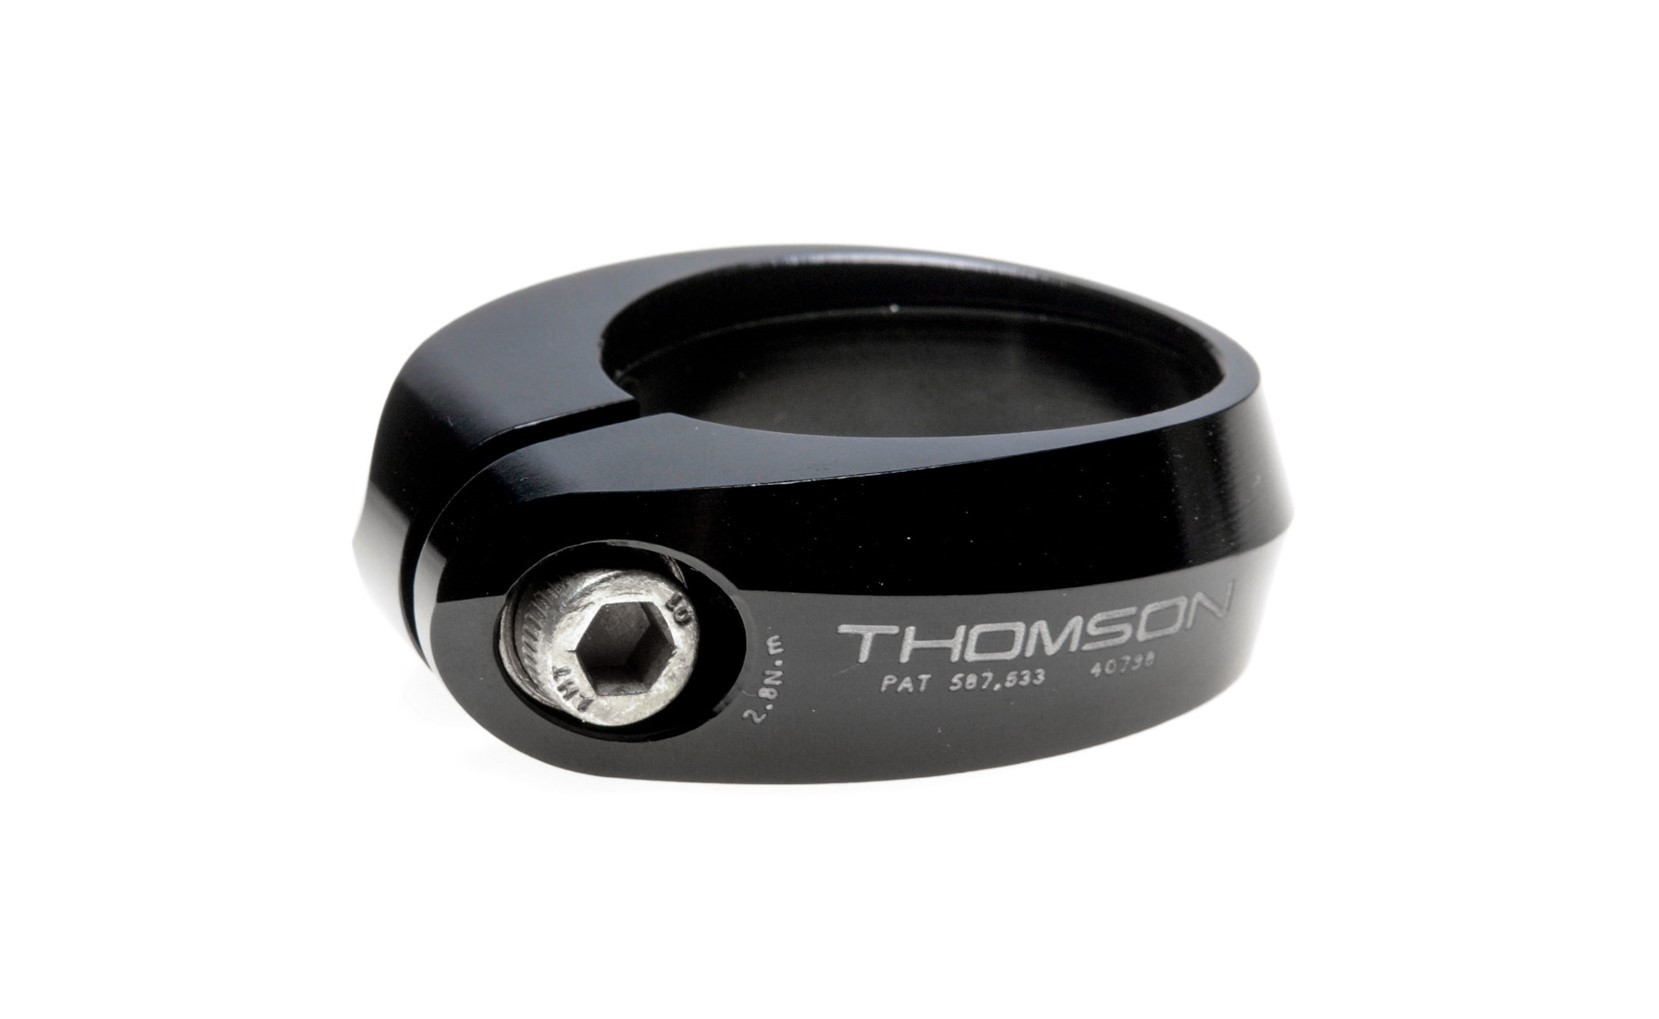 THOMSON | E102 29.8mm Seatpost clamp